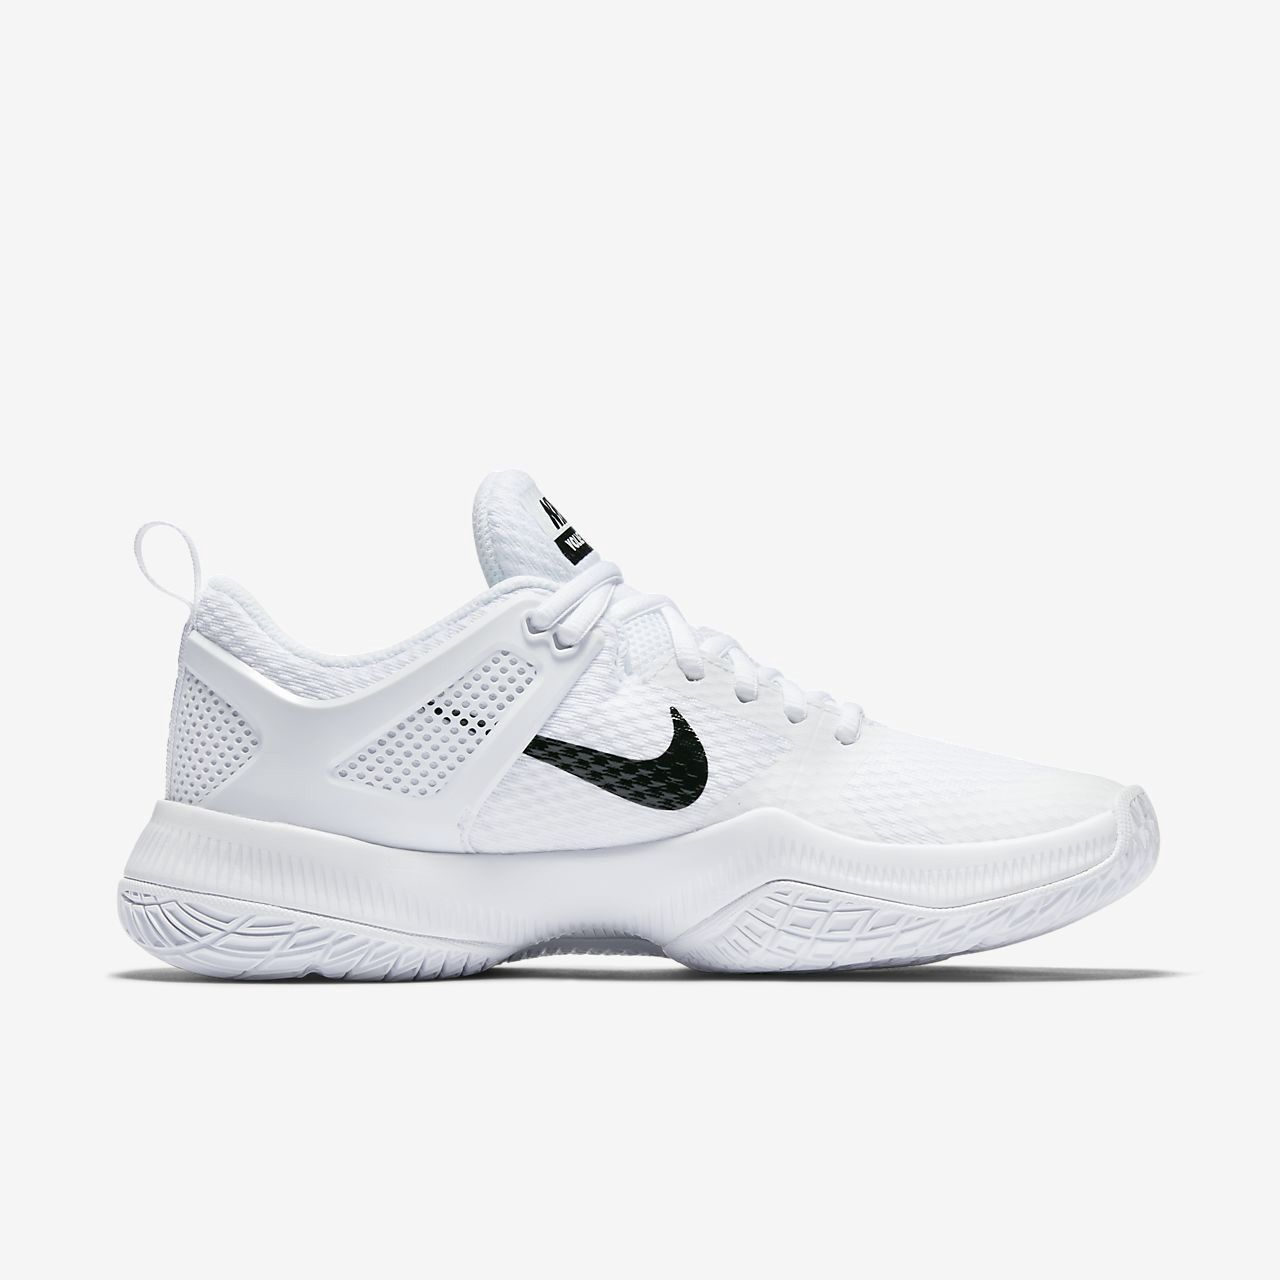 Nike Air Zoom Hyperace Women S Volleyball Shoe 8 5 Volleyball Shoes Womens Training Shoes Training Shoes